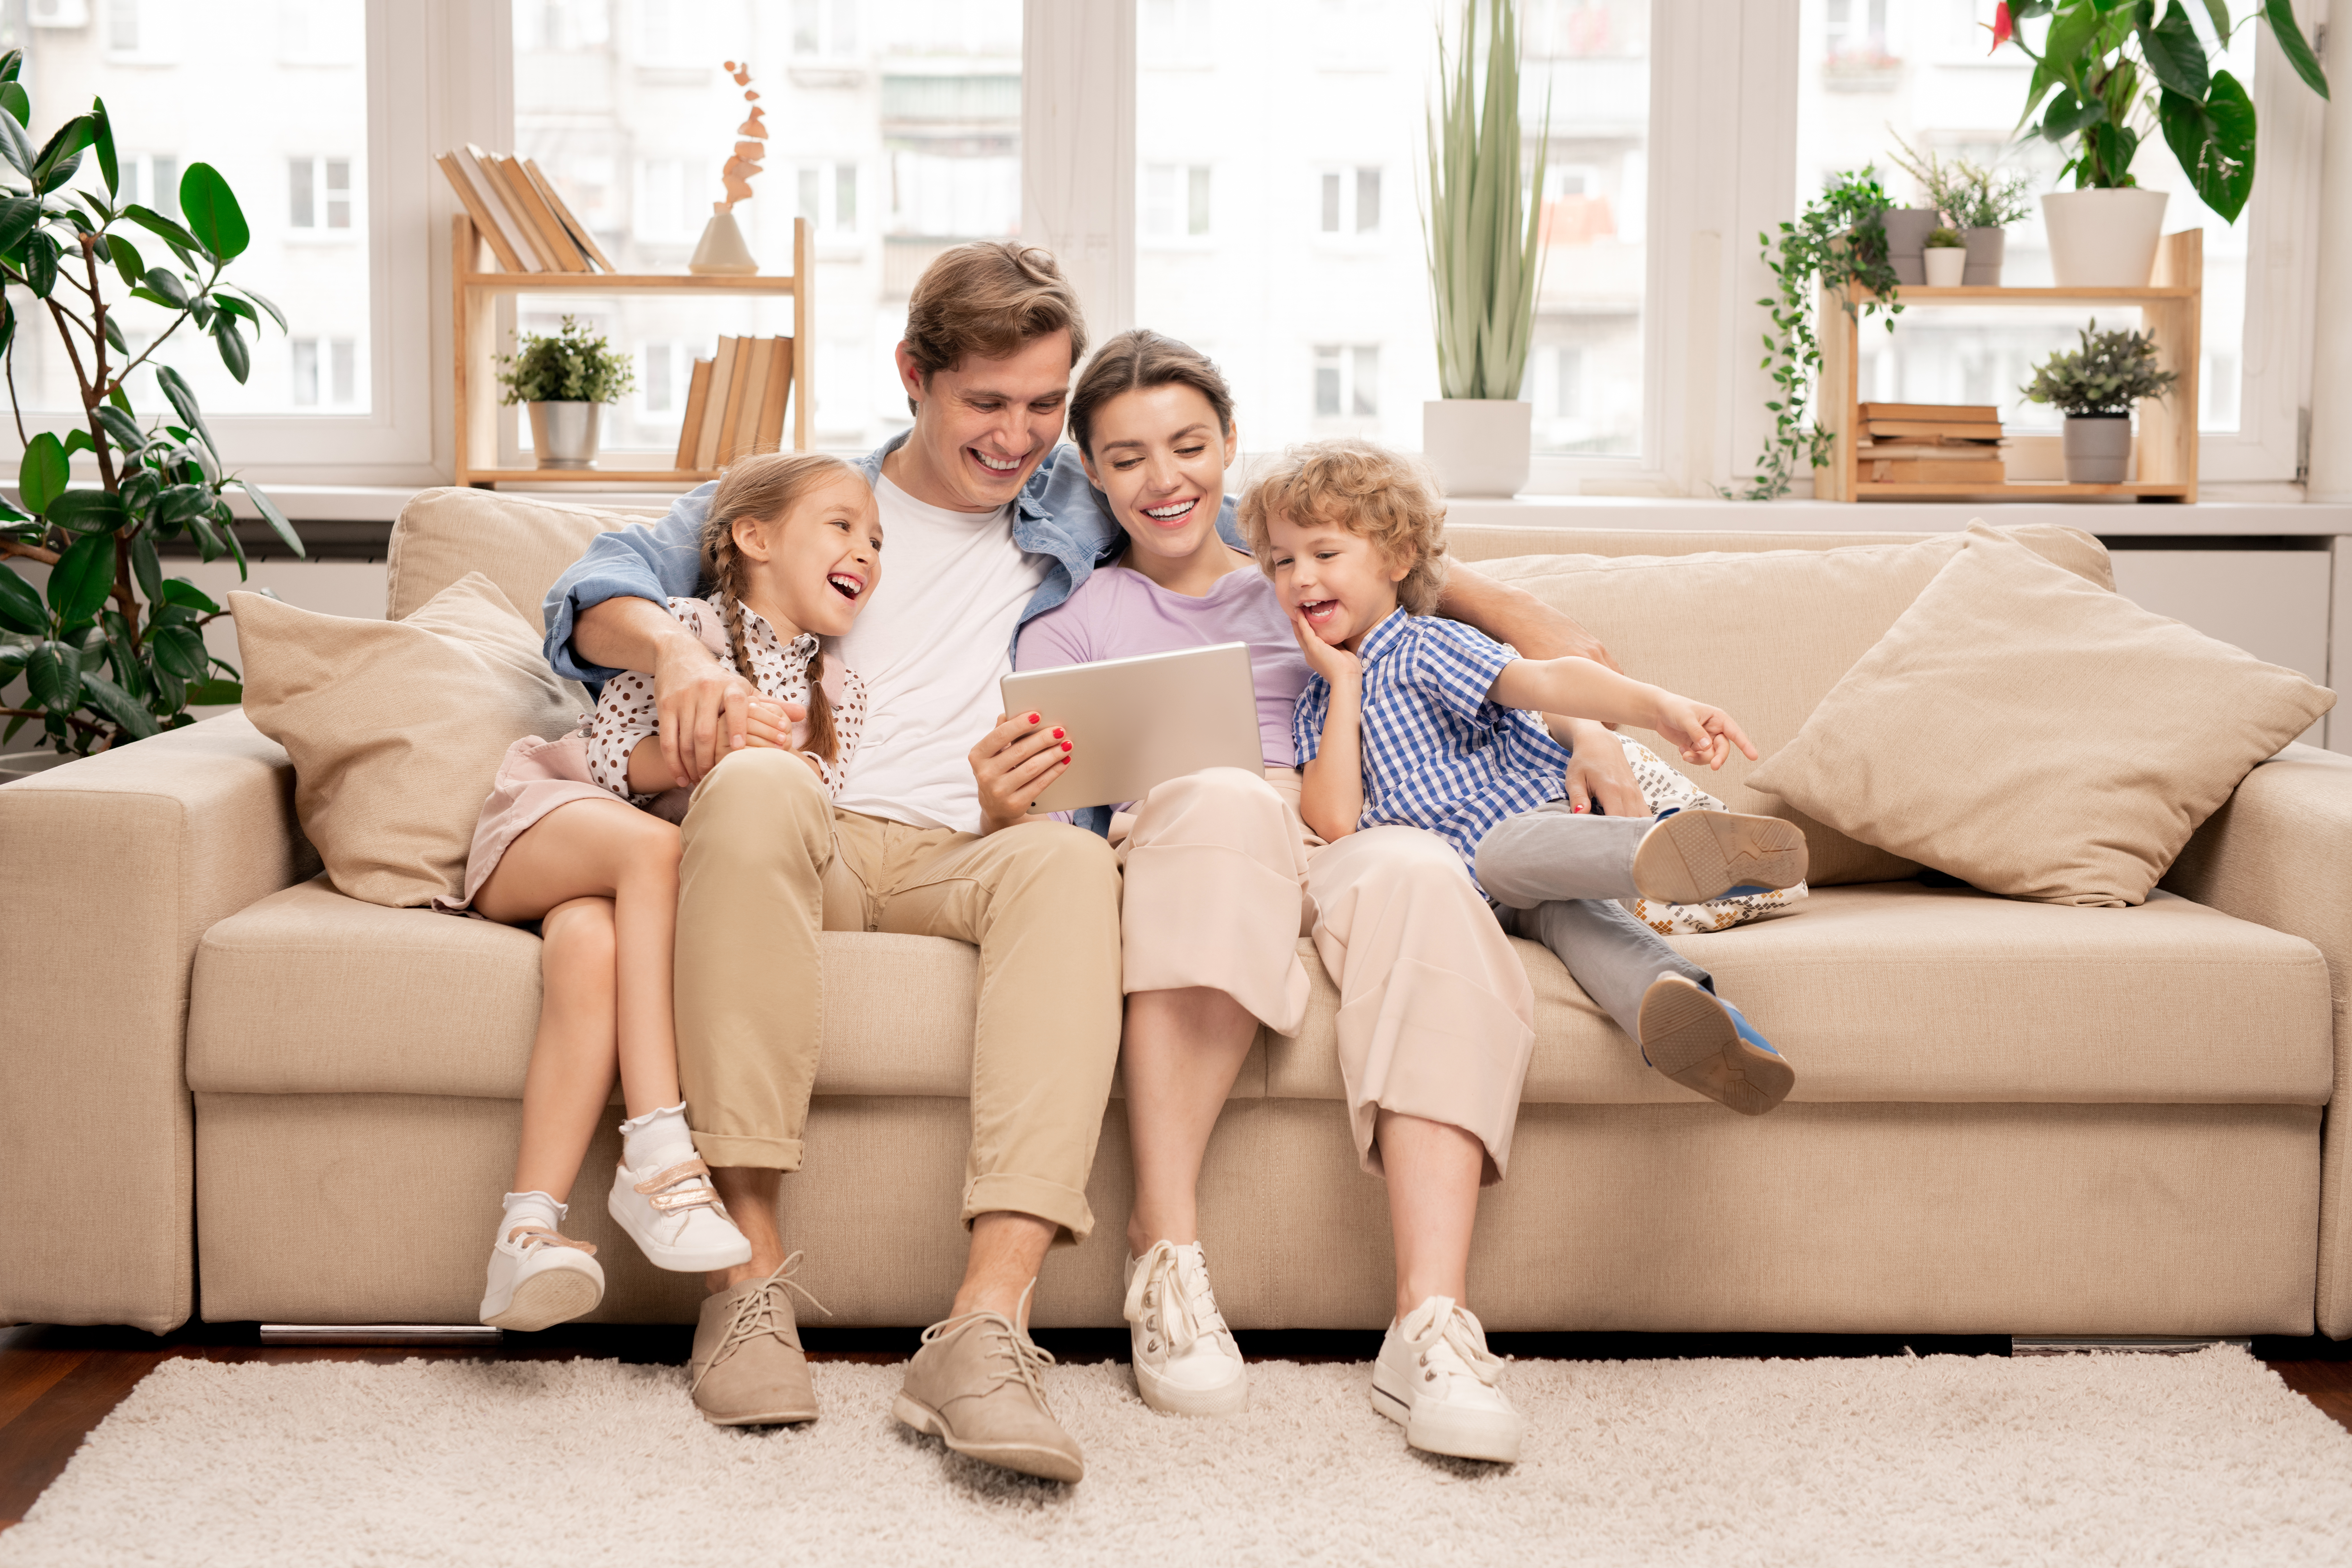 Young joyful casual family of two kids a